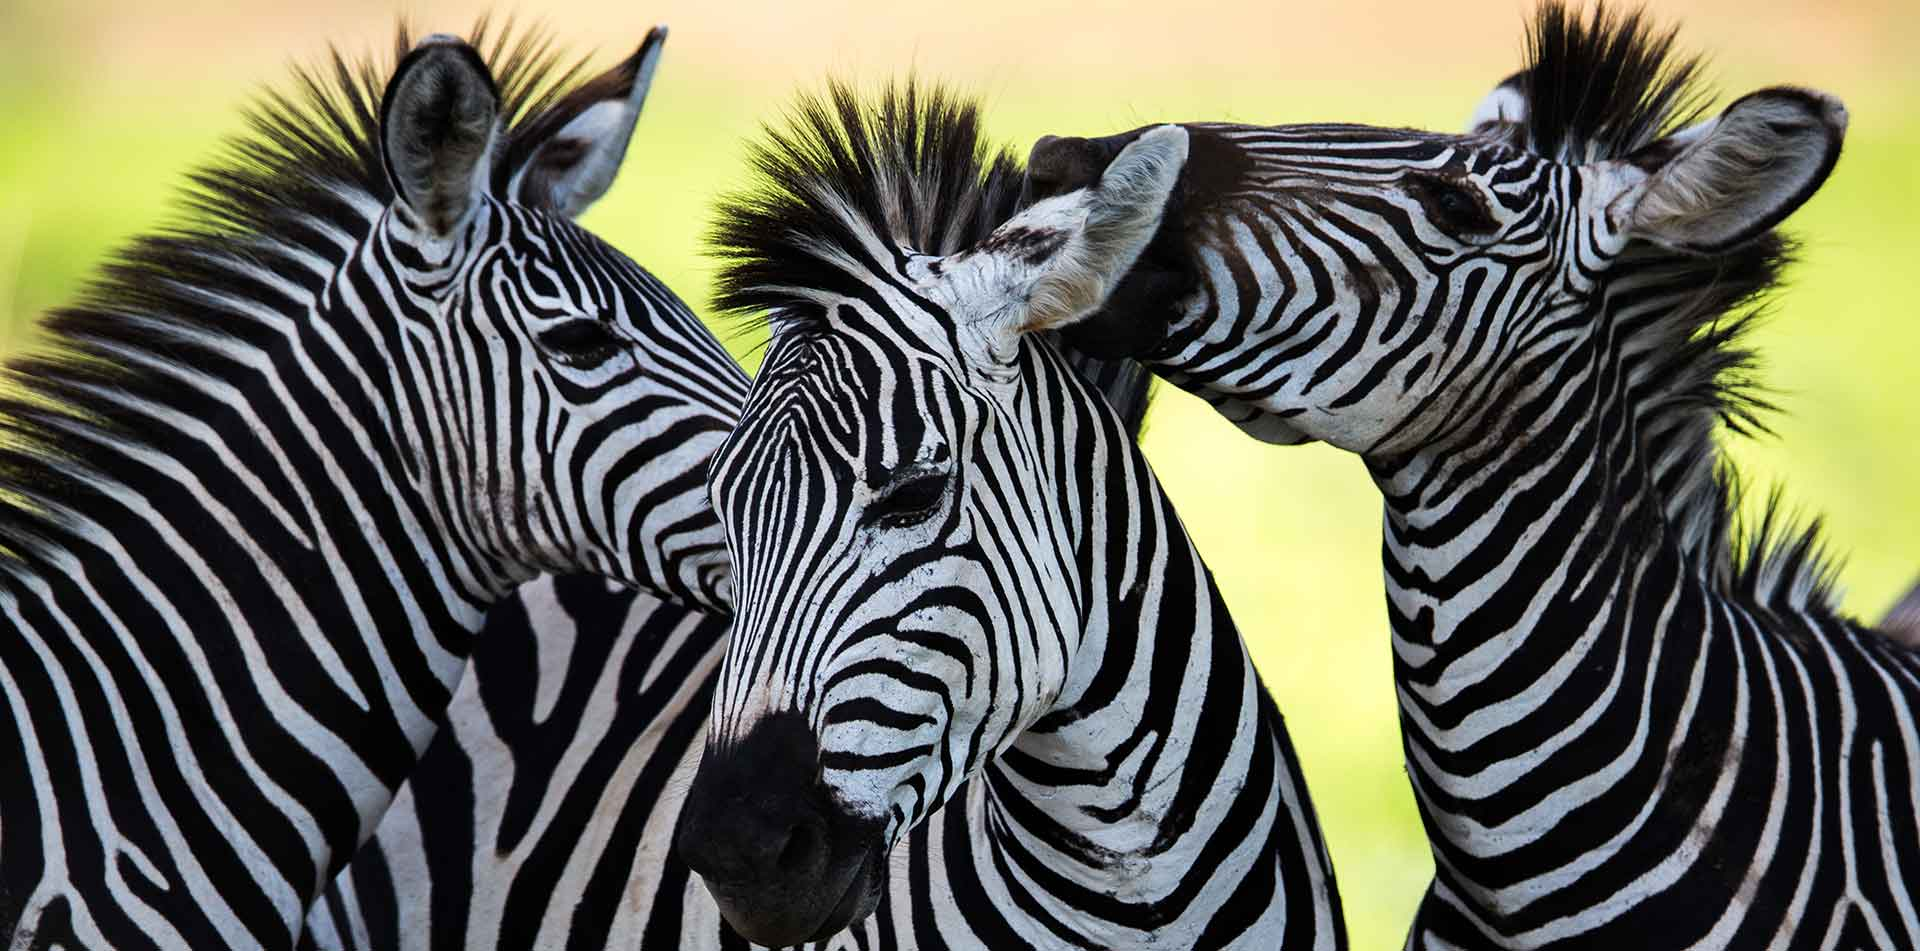 Africa beautiful affectionate wild zebras unique black and white stripes nature - luxury vacation destinations